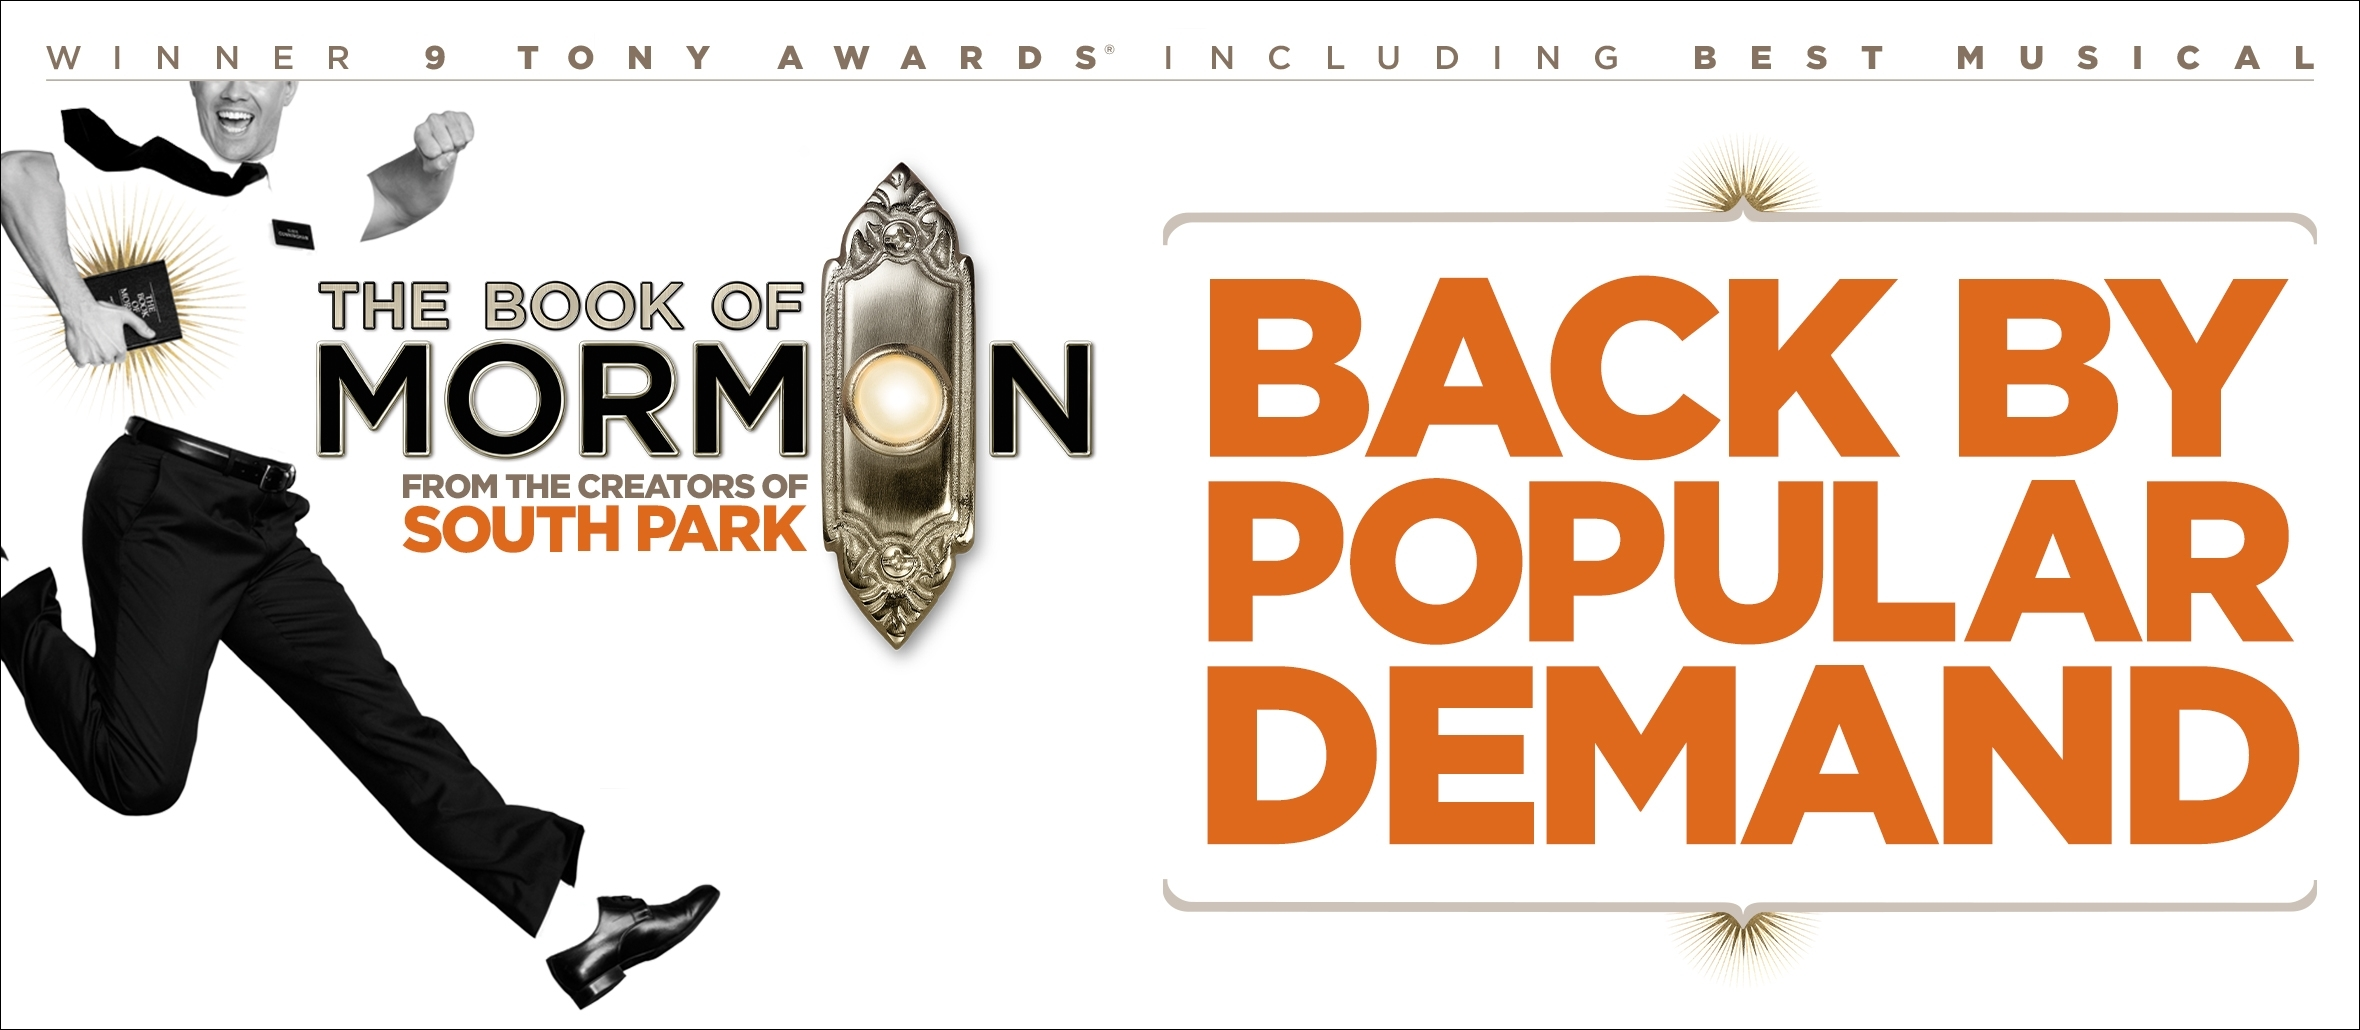 The Book Of Mormon | Barbara B. Mann - Performing Arts Hall